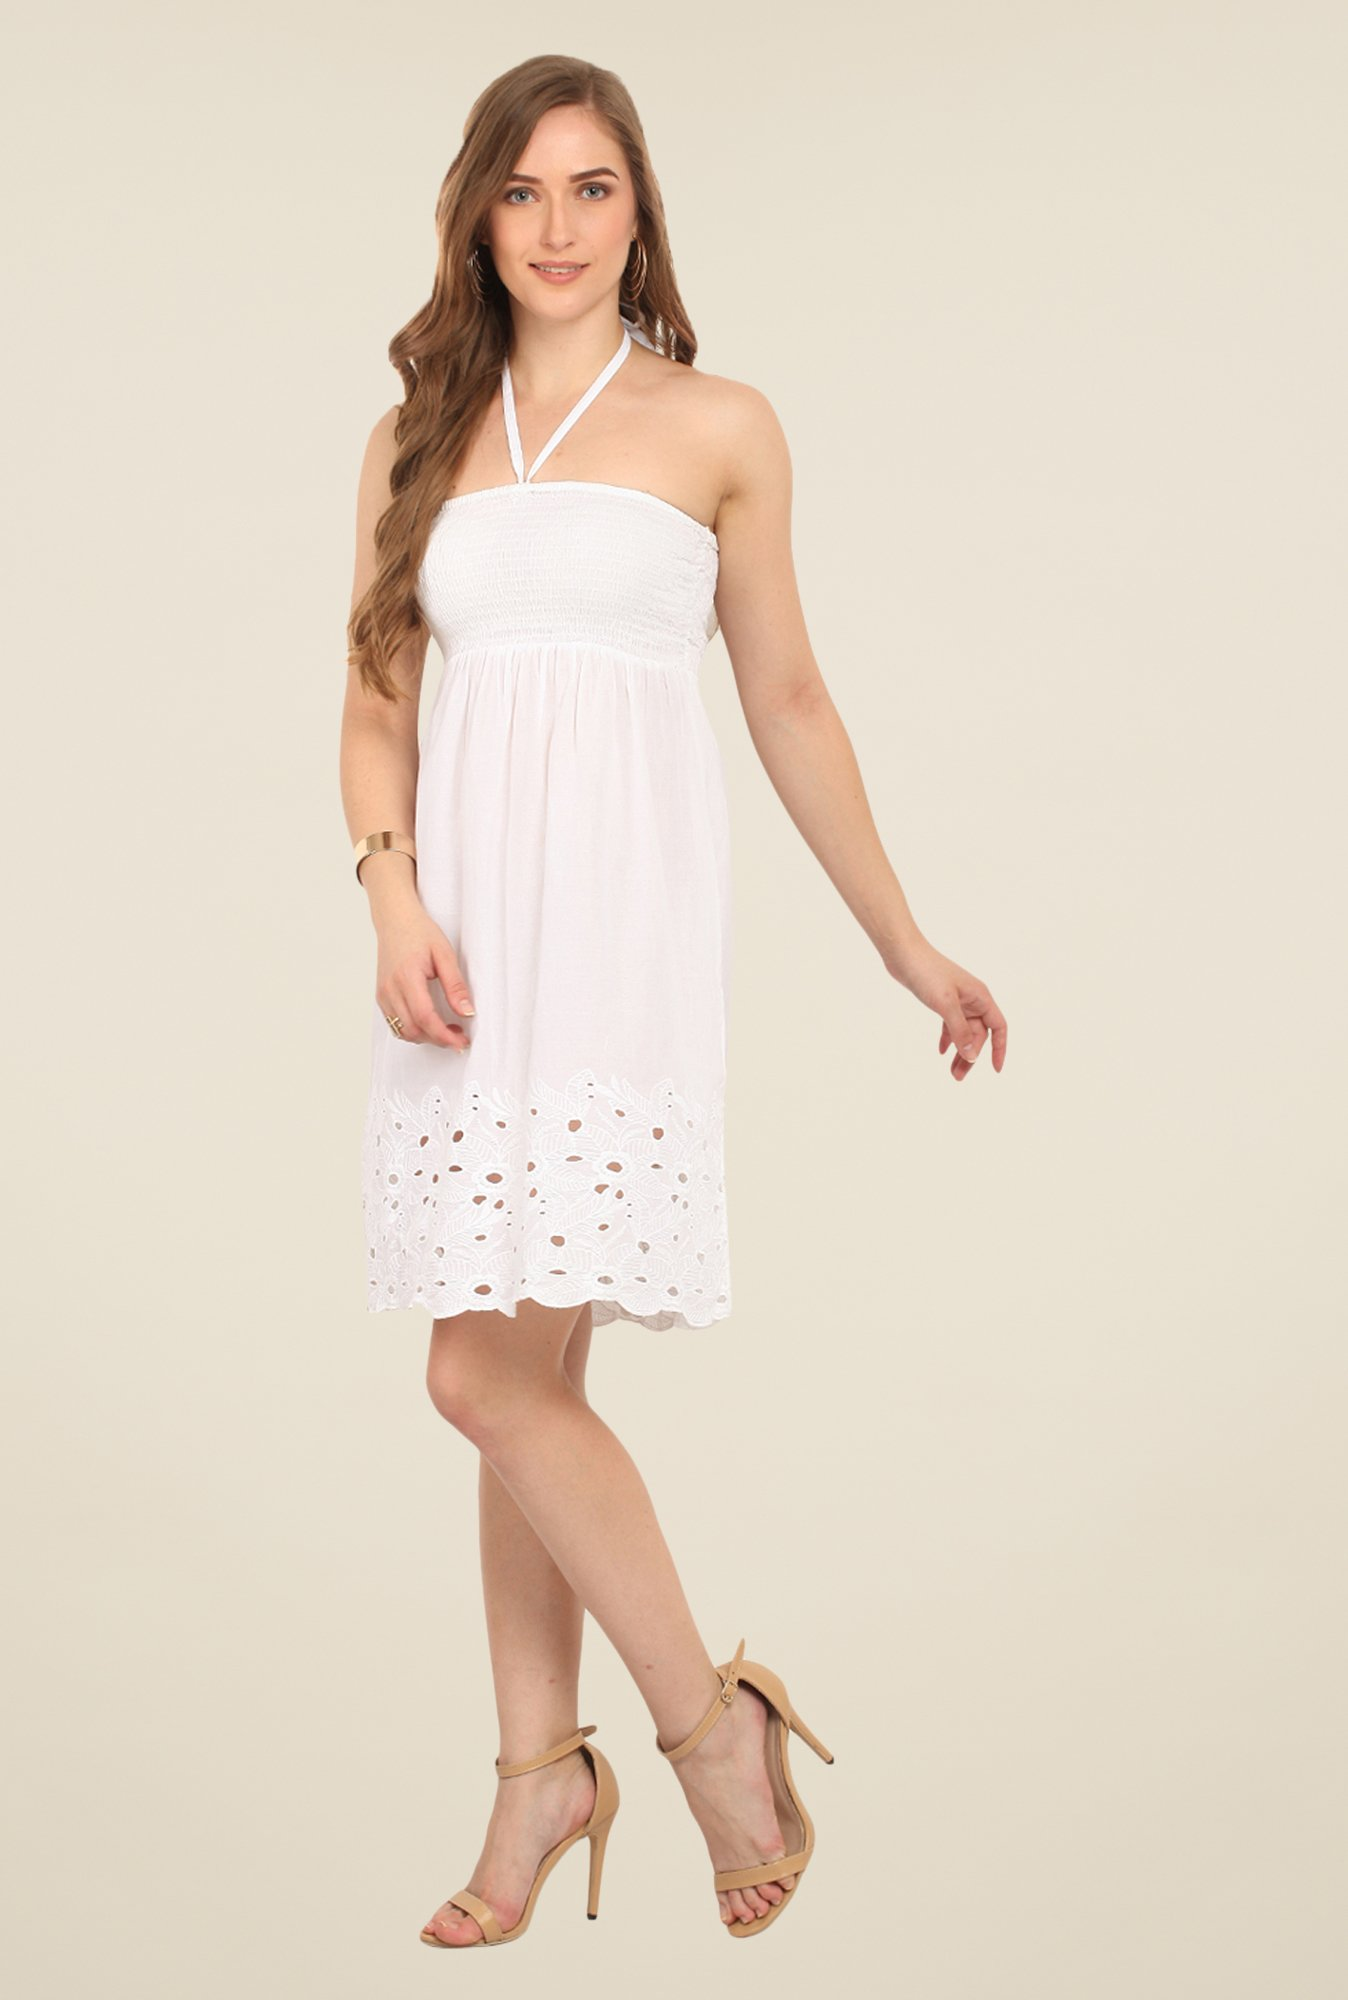 Honey & B White Embroidered Dress